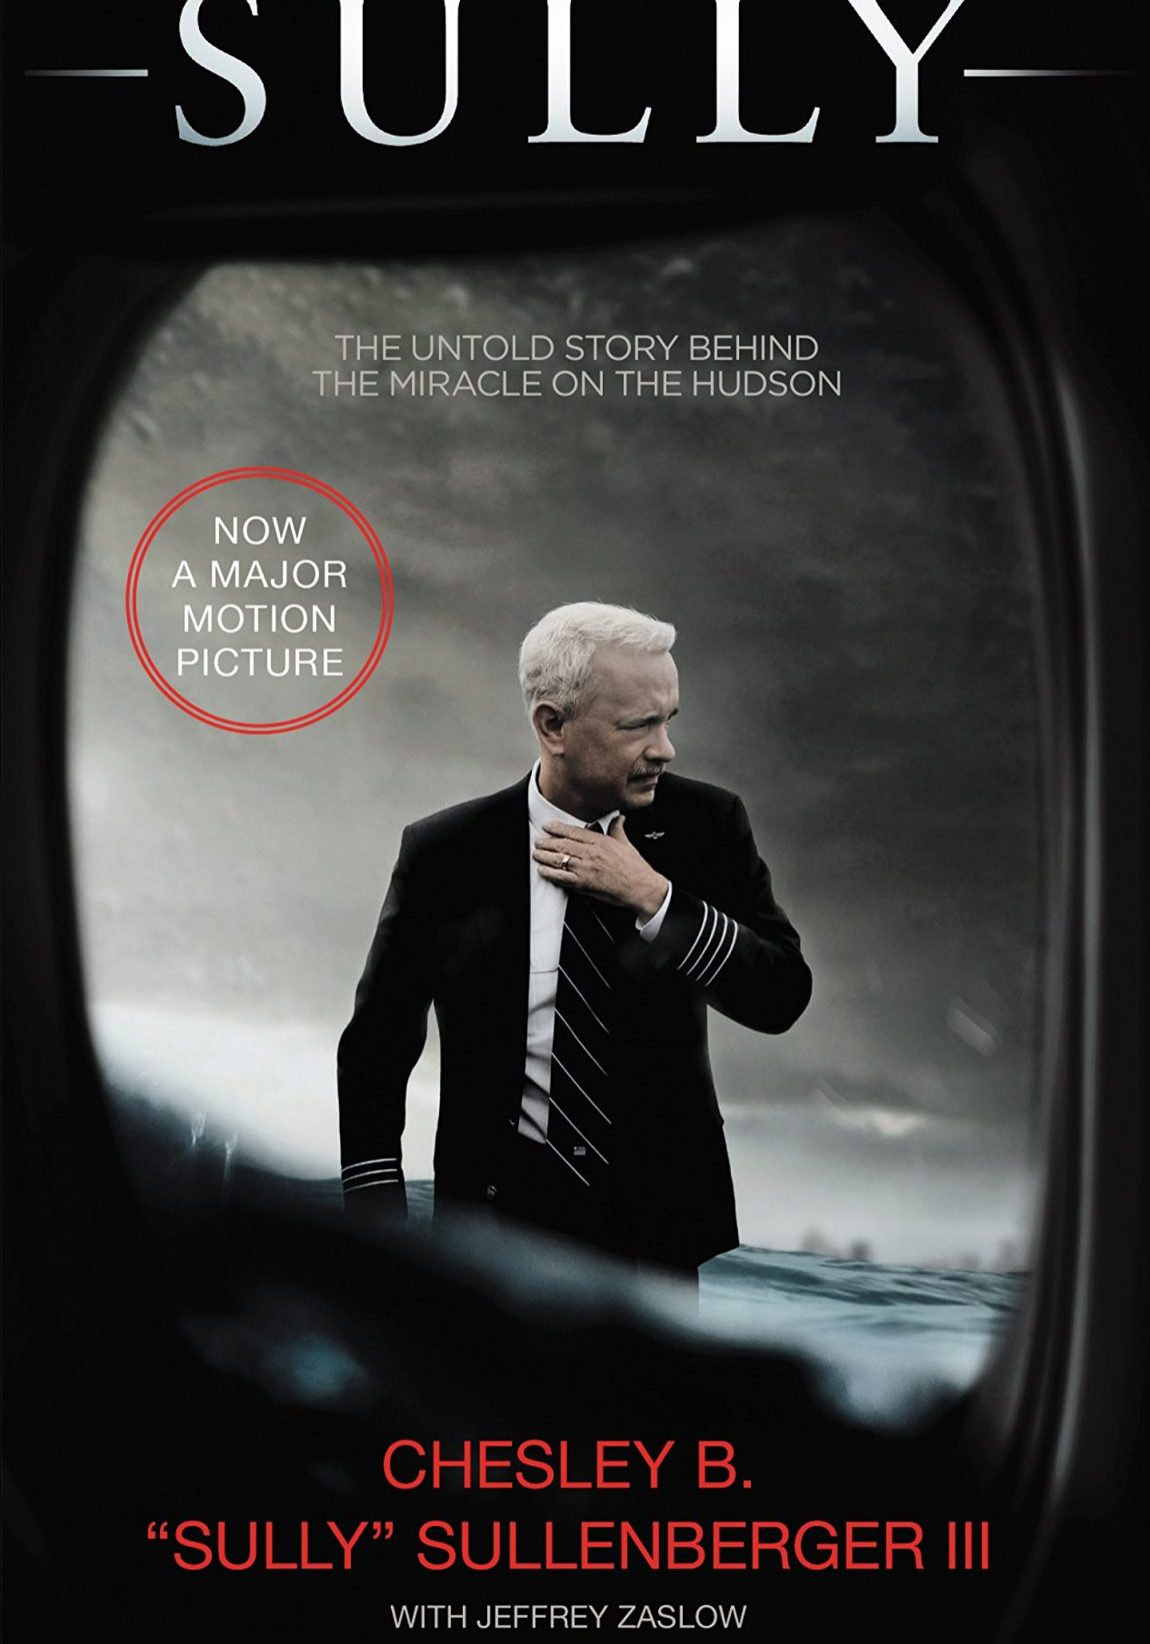 Sullenberger - Sully